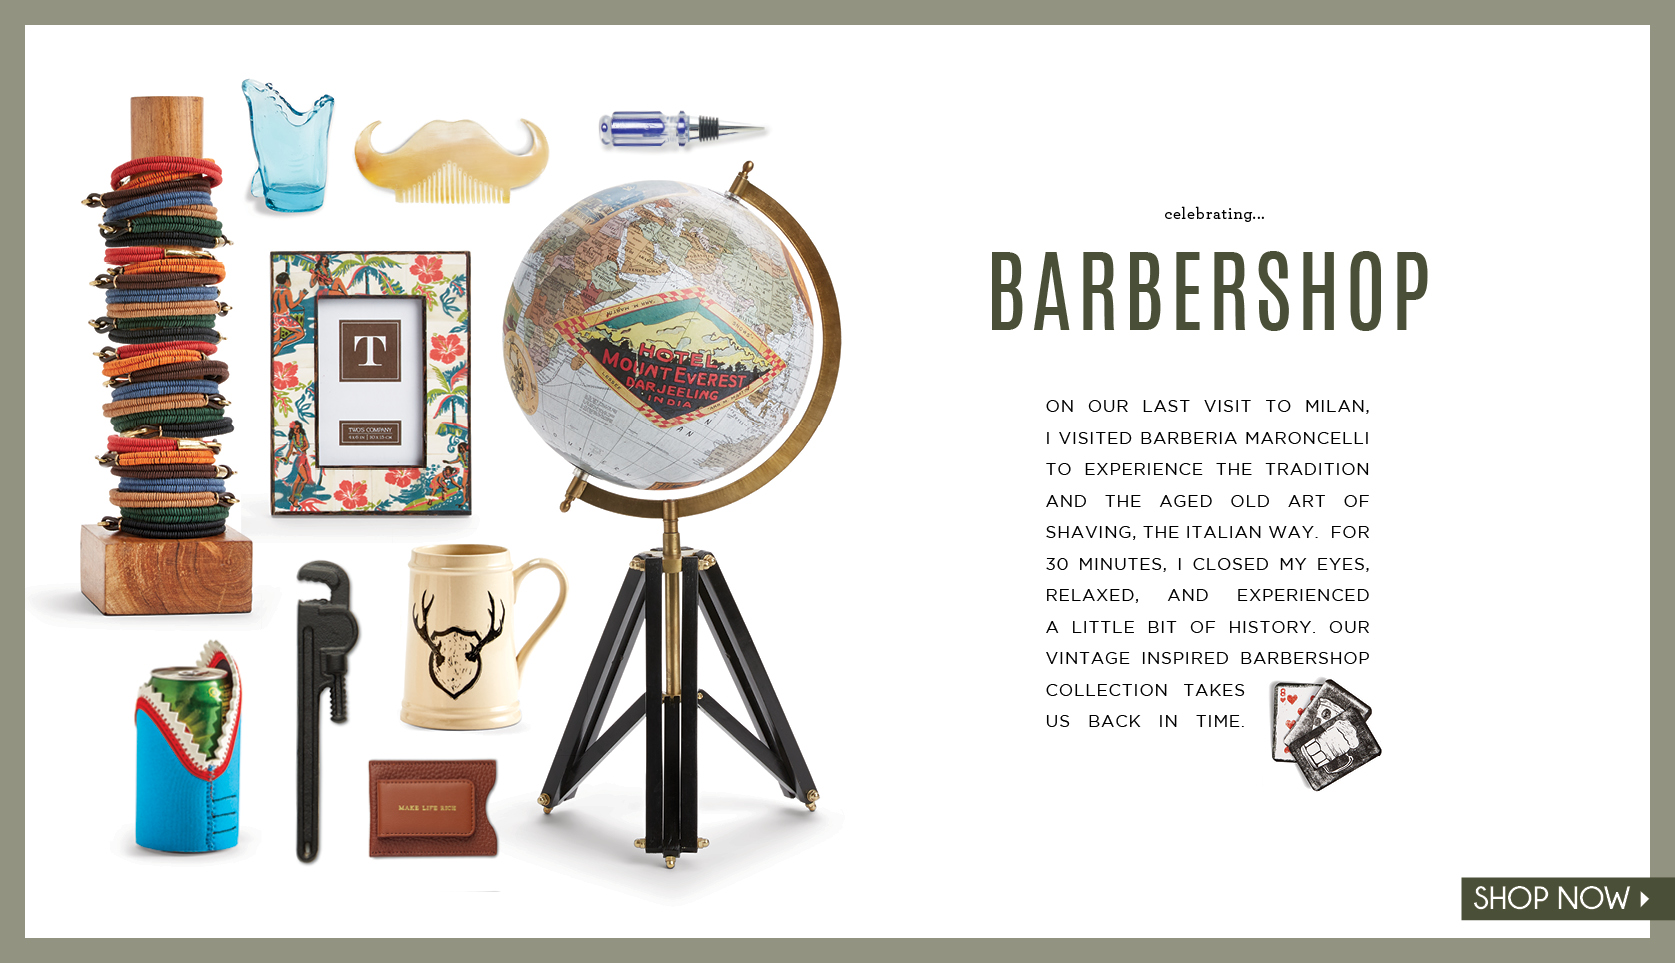 Barbershop Collection Image